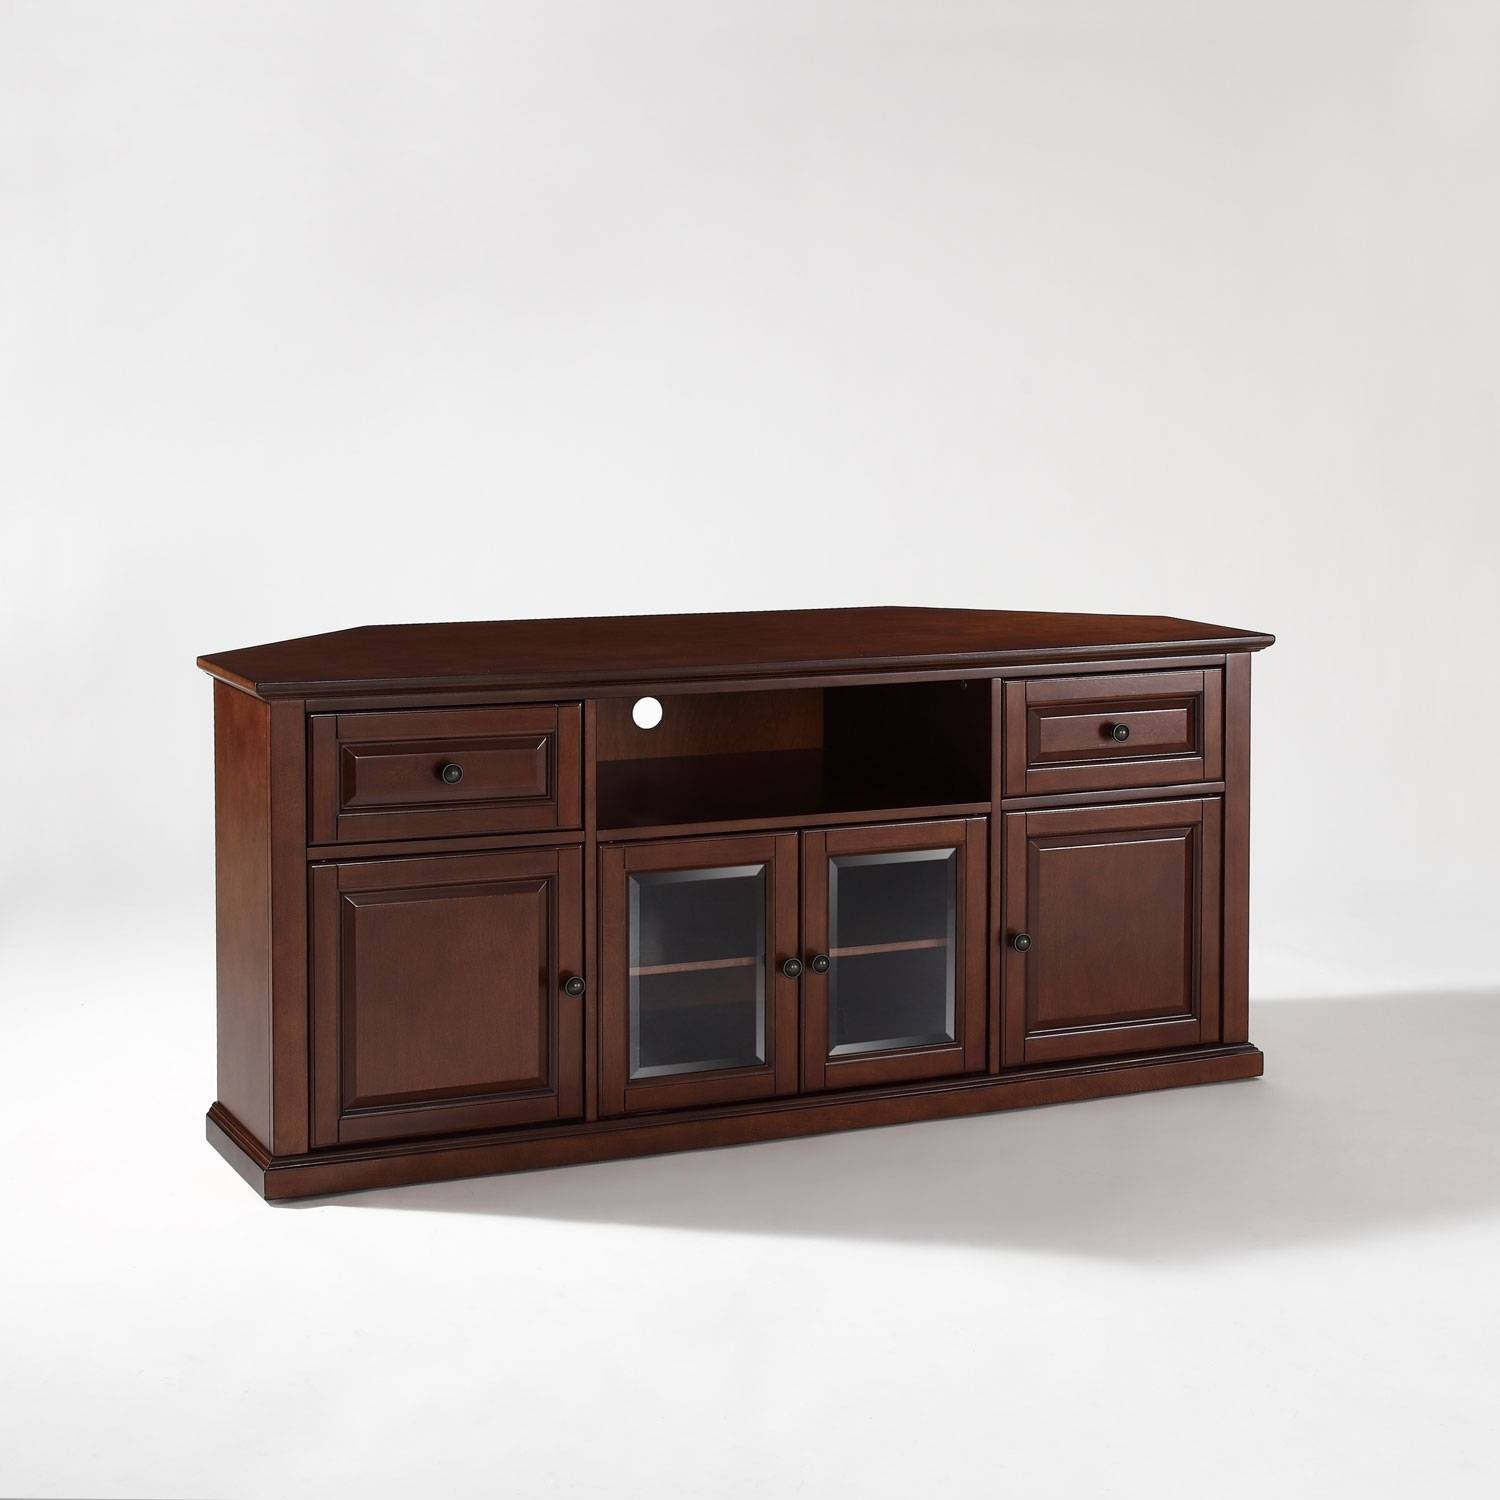 Low Corner Tv Cabinet | Cabinet Ideas intended for Low Corner Tv Cabinets (Image 7 of 15)